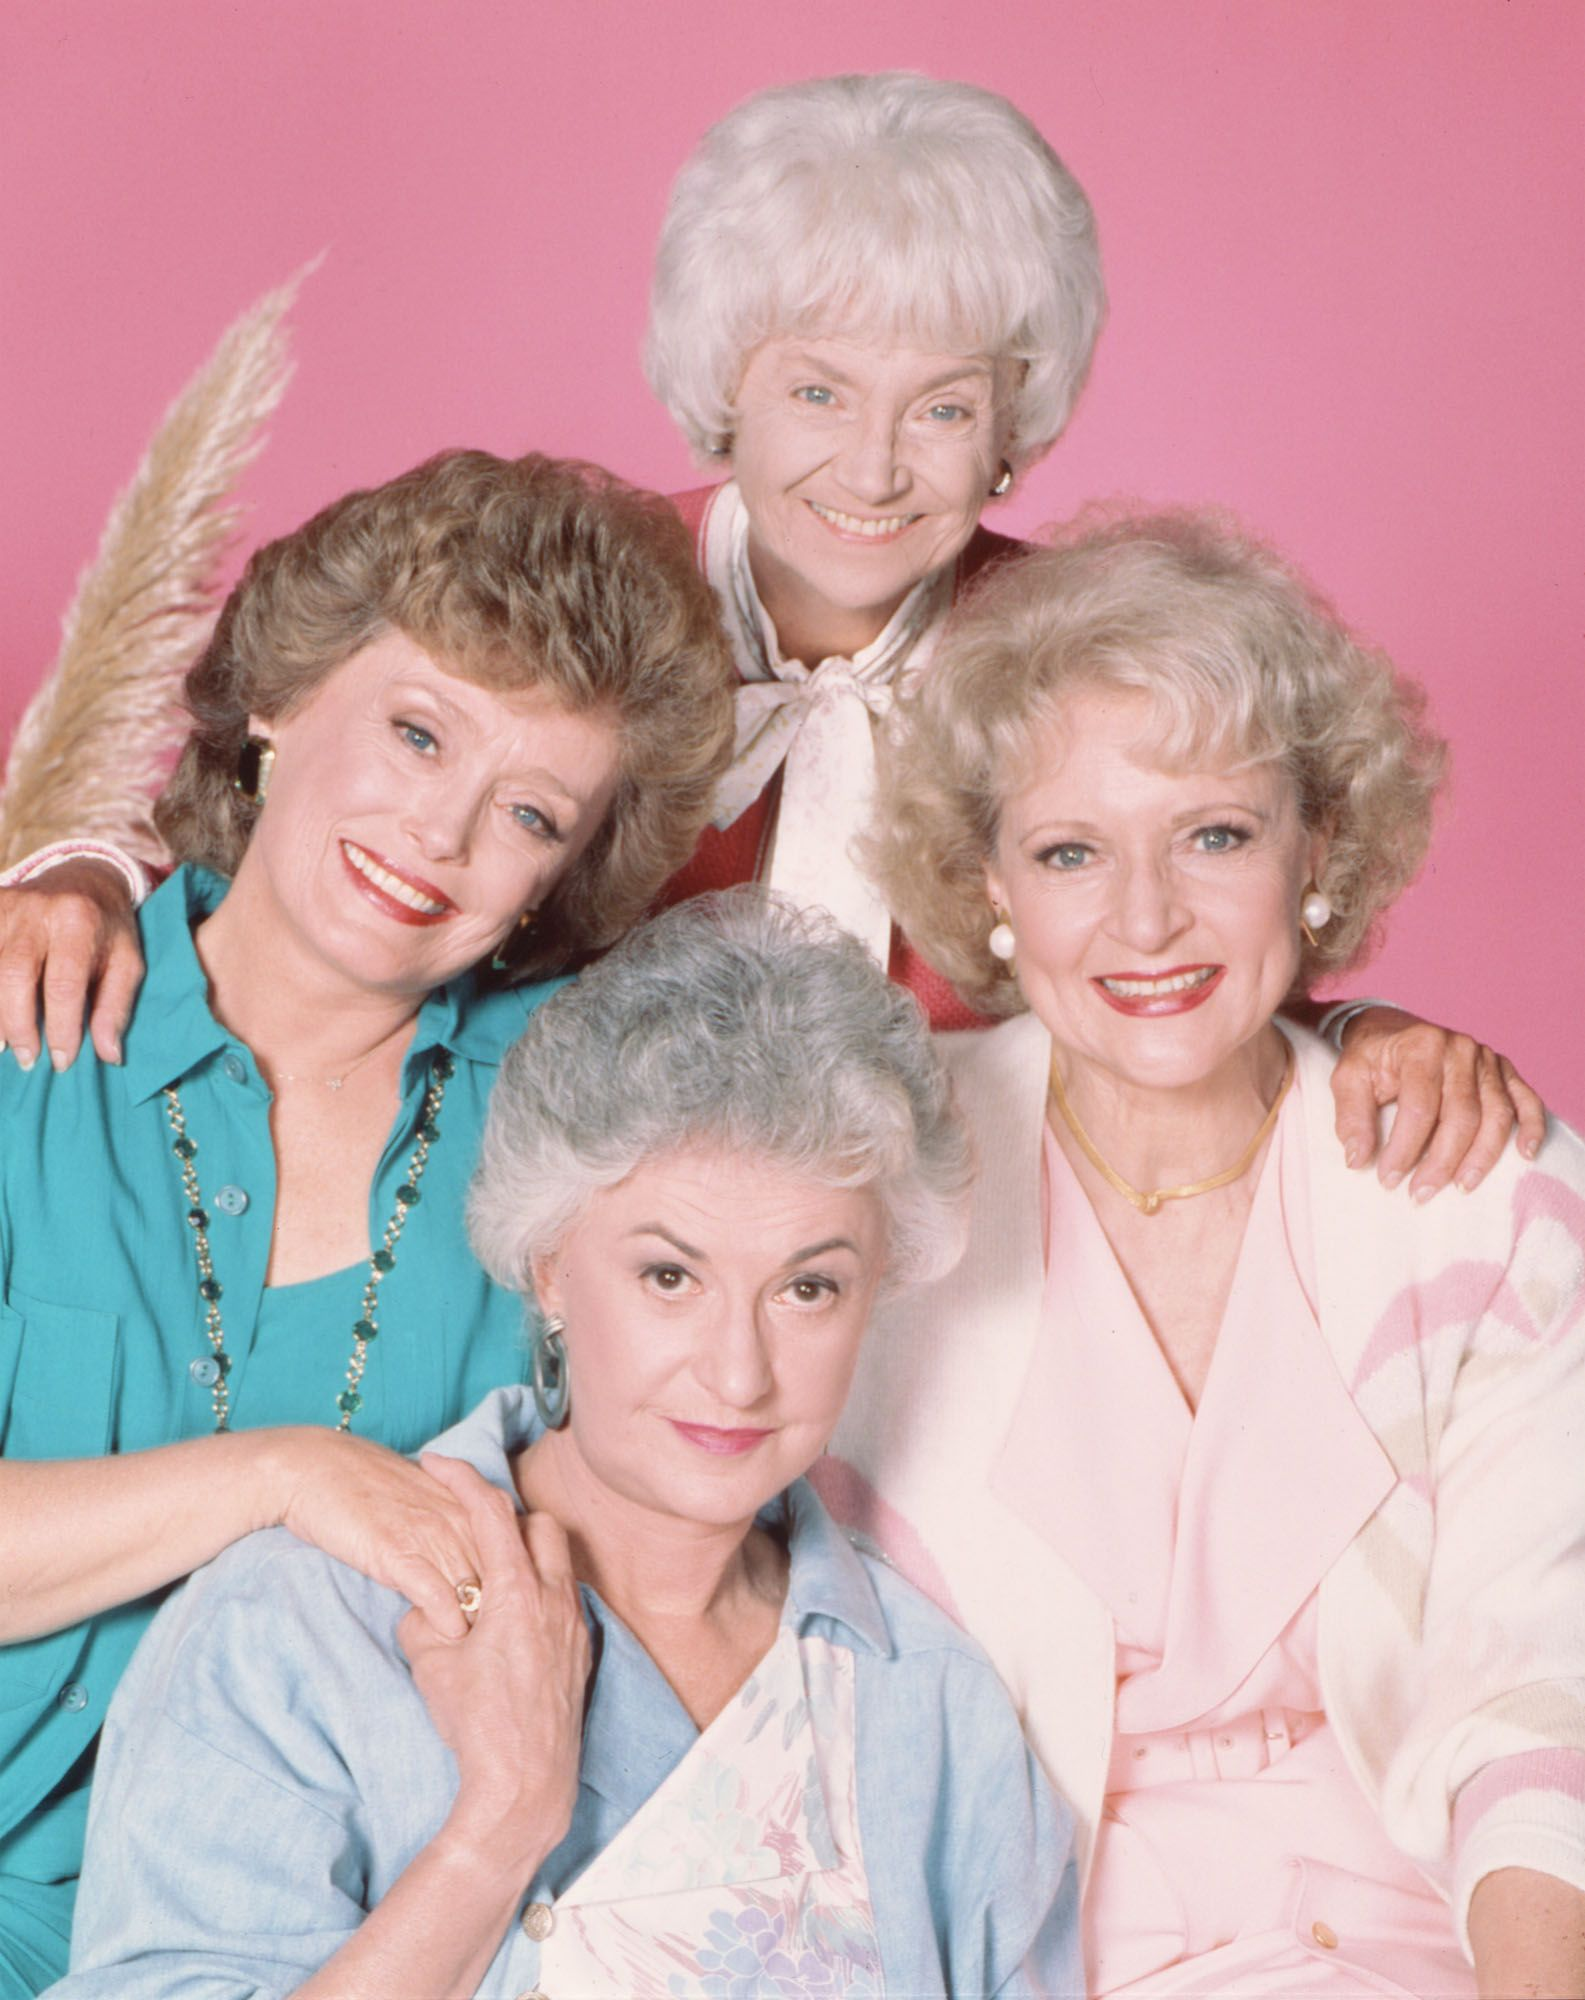 Golden Girlsalways Makes Me Laughover Over Overgreat Stress RelieverLOL